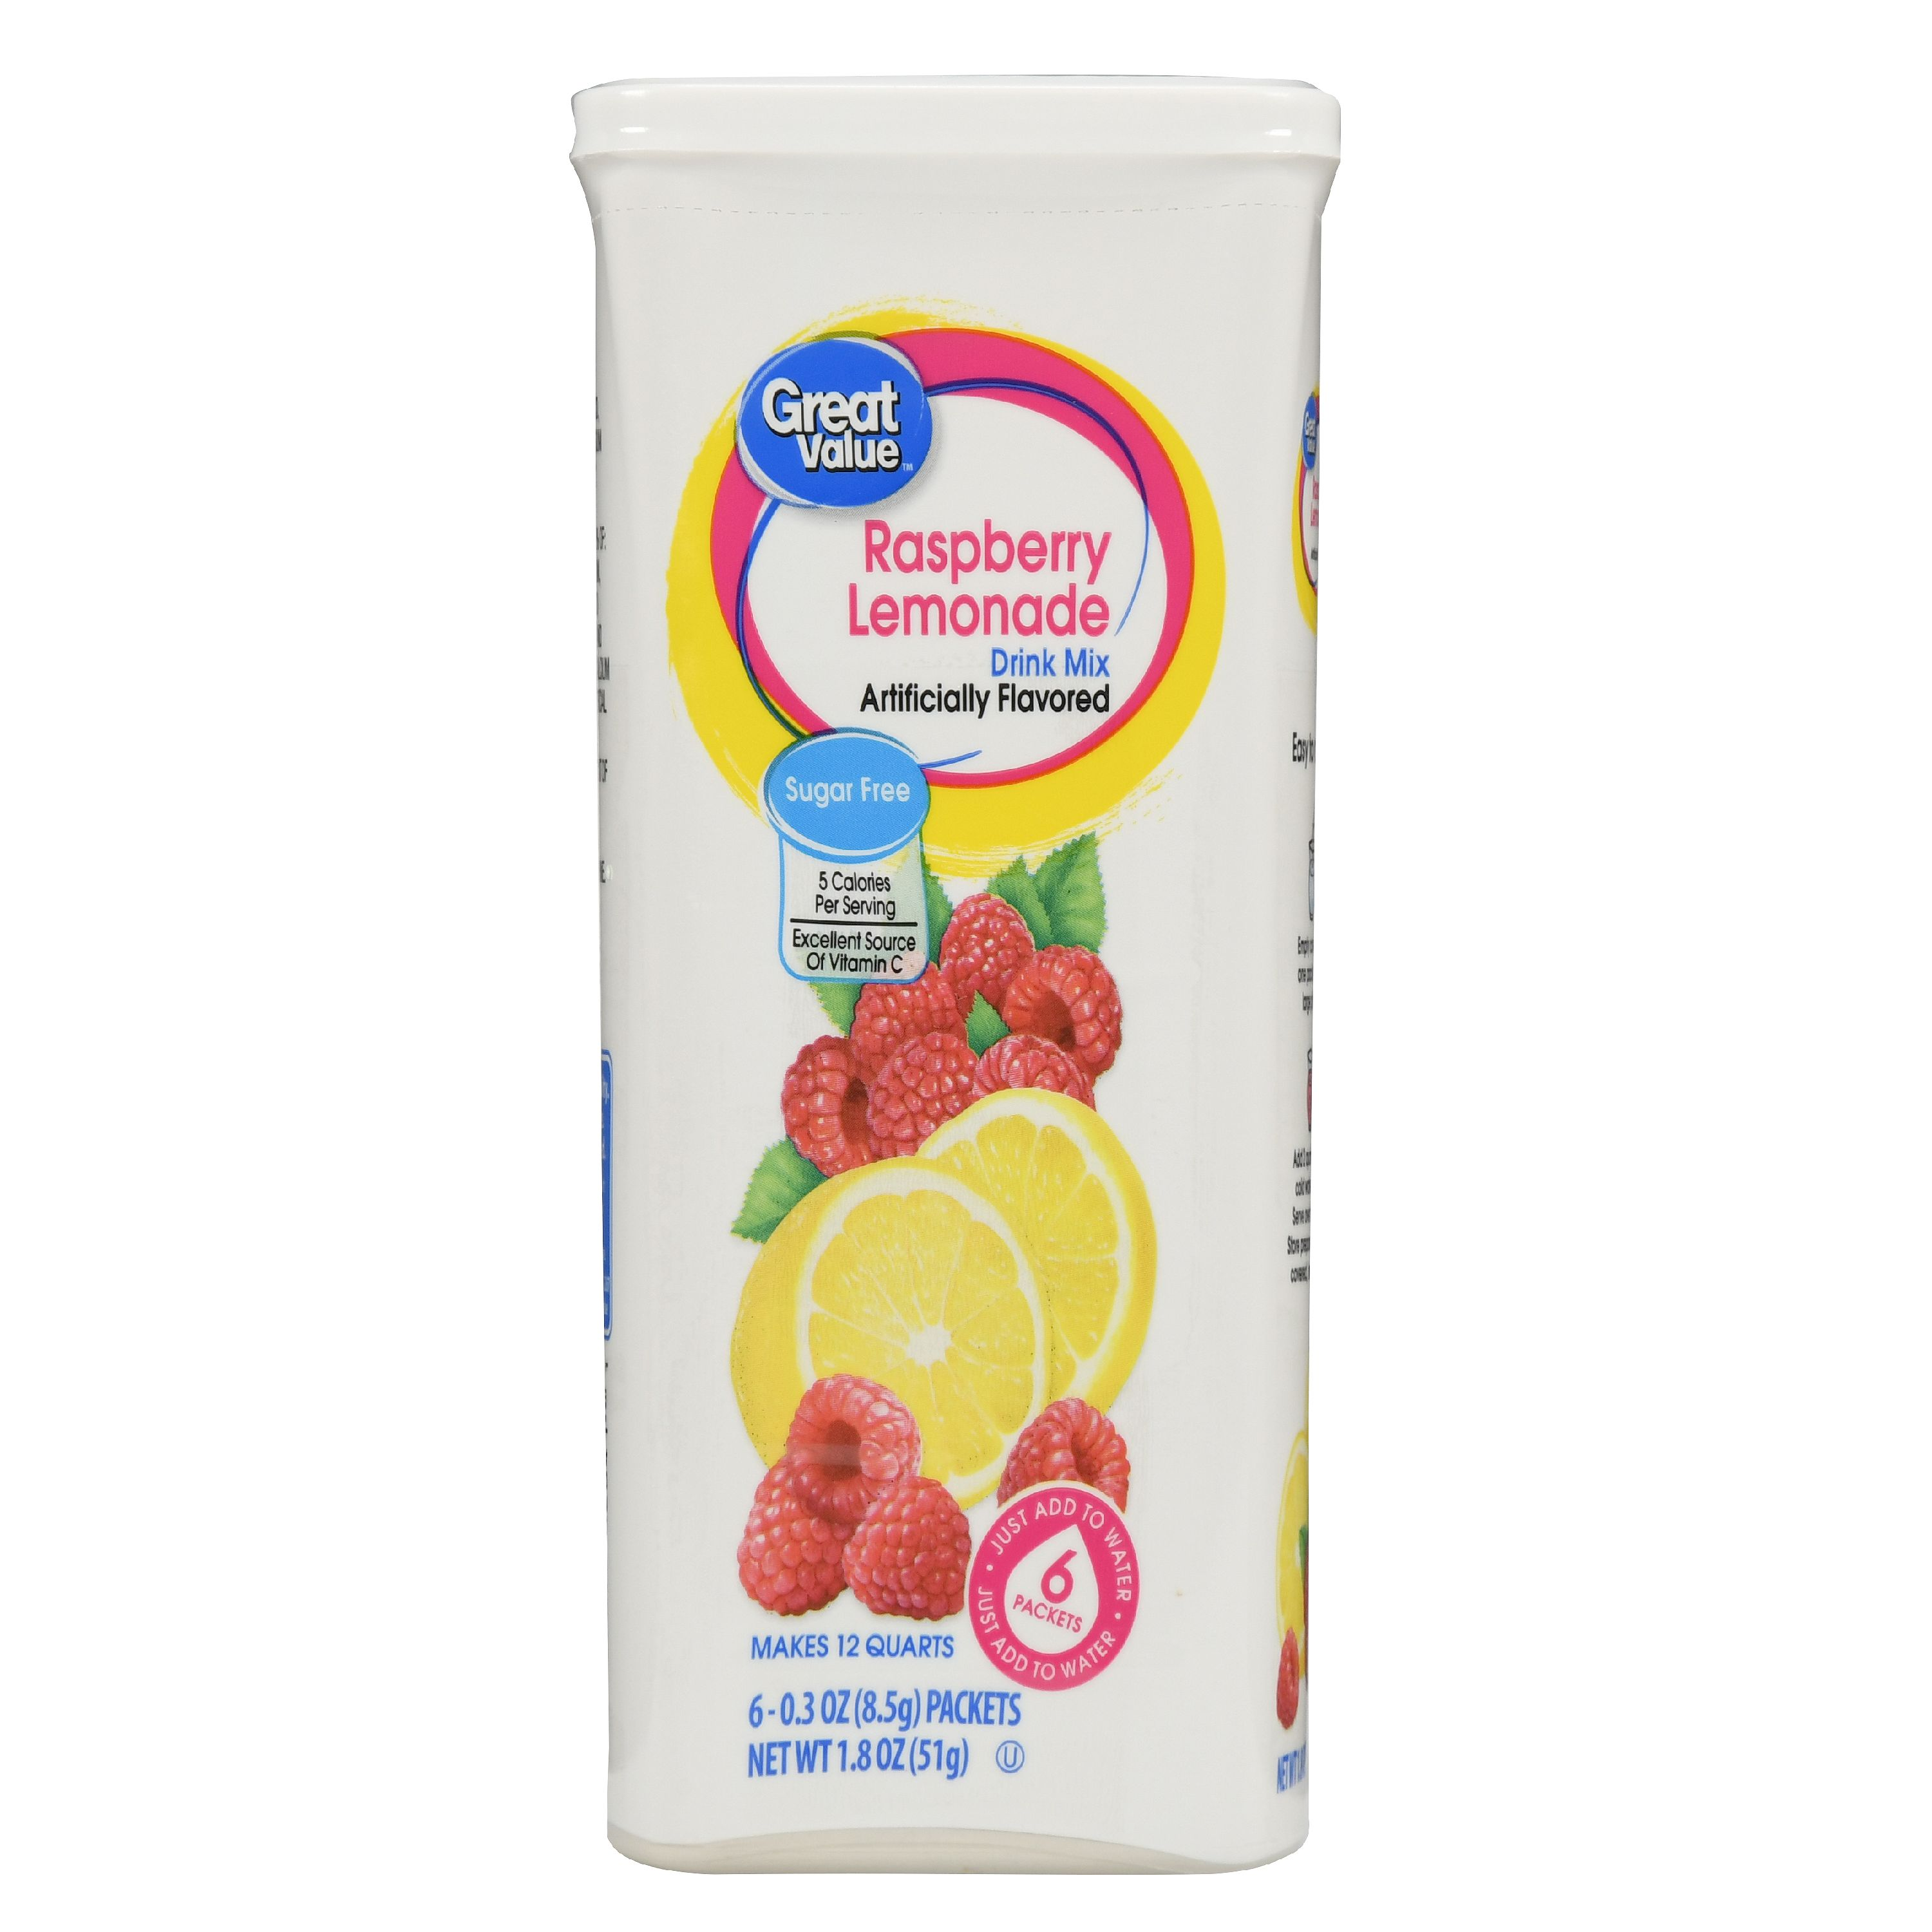 Great Value Drink Mix, Raspberry Lemonade, Sugar-Free, 1.8 oz, 6 Count